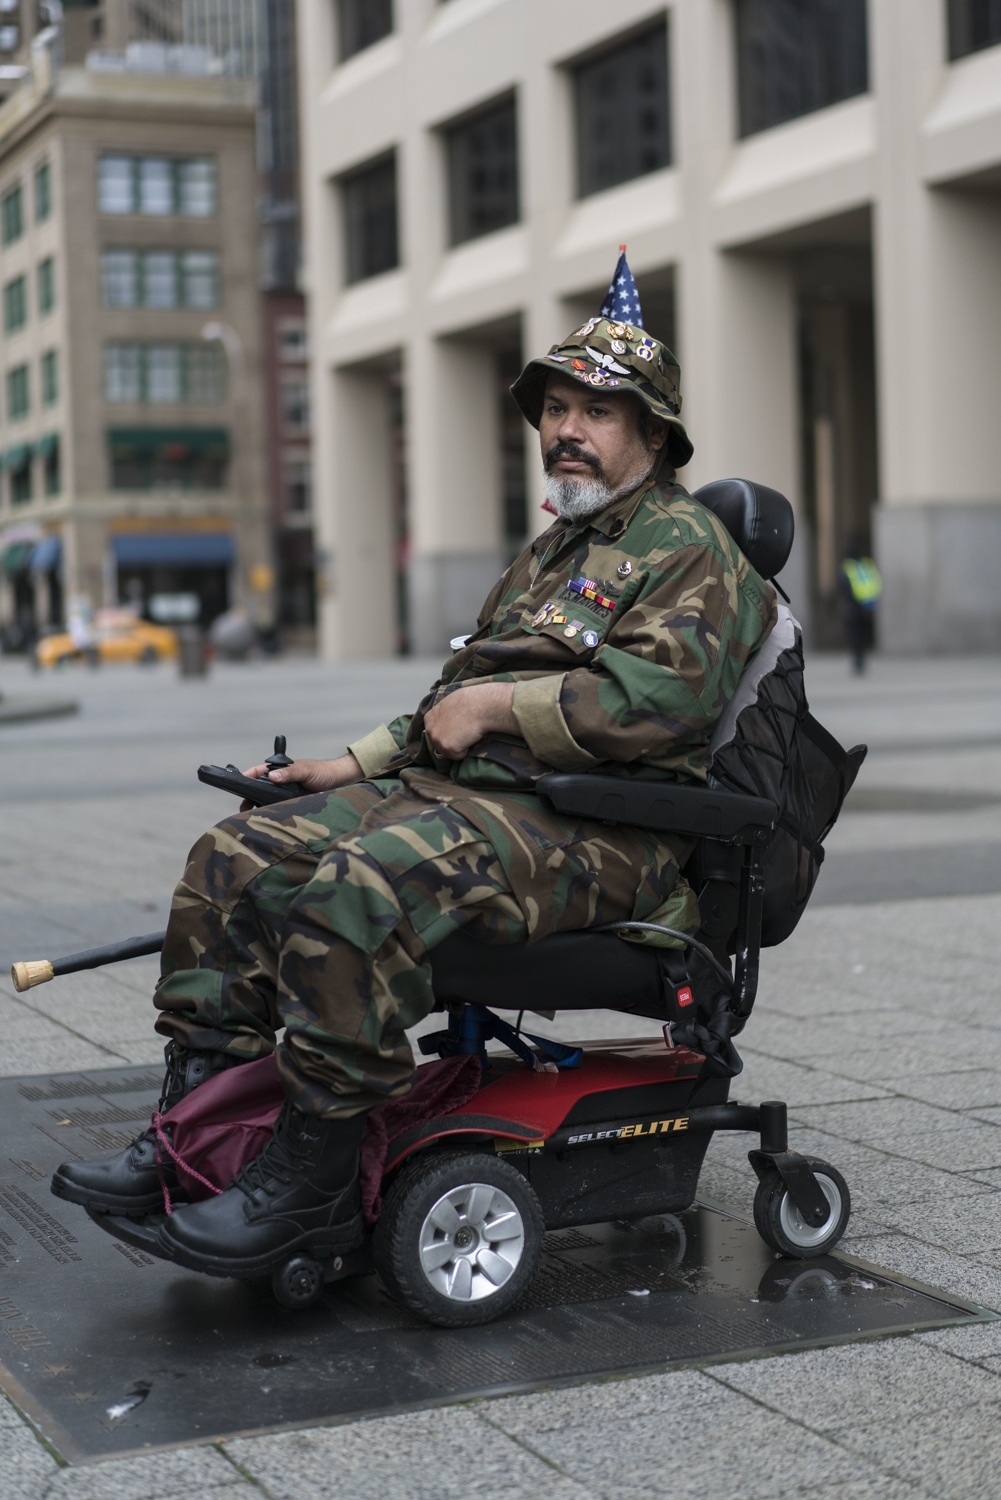 Afghanistan Marine Veteran Eudes Garcia pays tribute on Memorial Day. Shot by a sniper in Fallujah in 2006, Garcia is restrained to a motorized wheelchair. New York City, 2017.